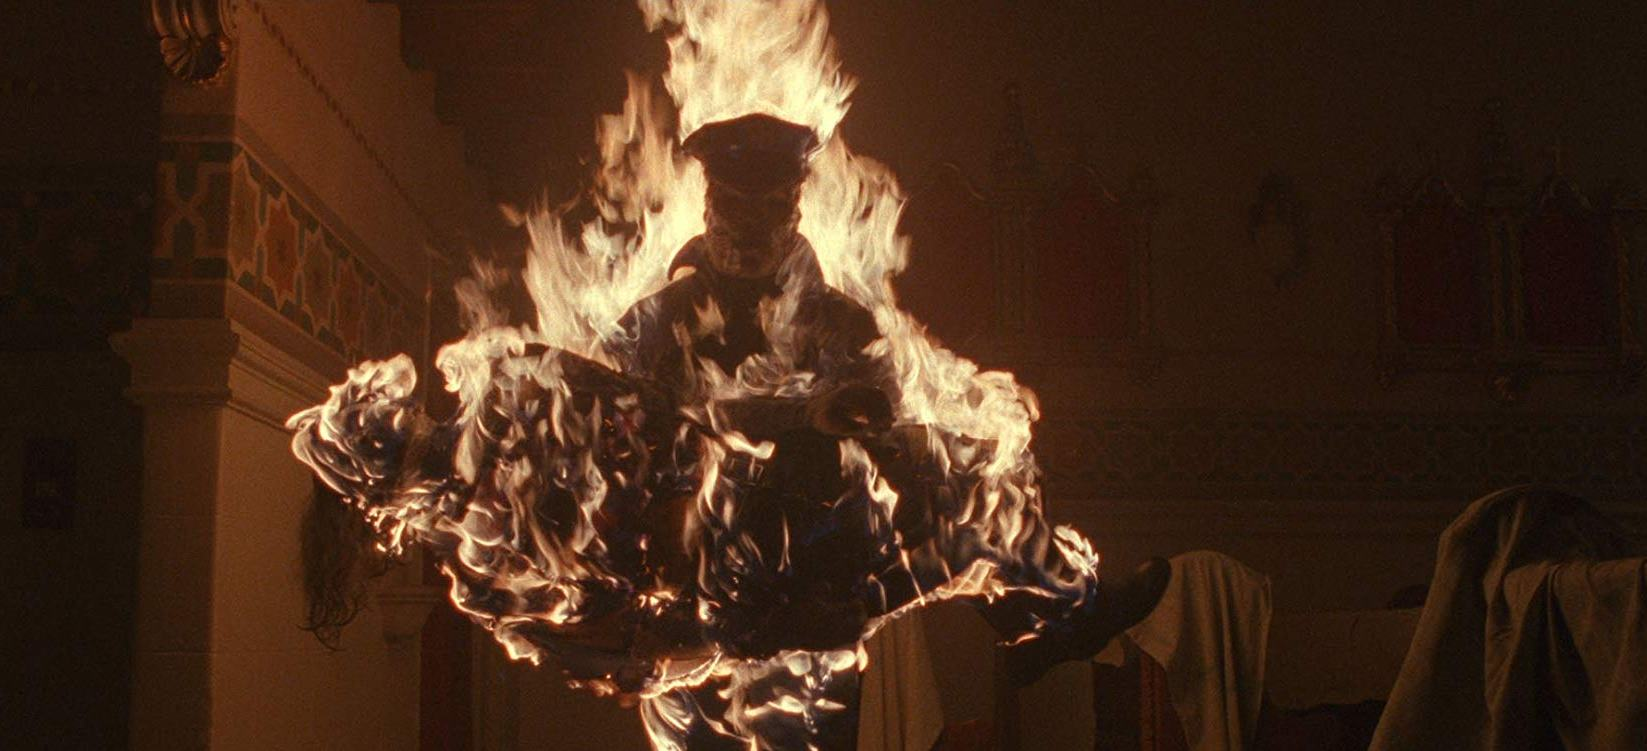 Matt Cordell (Robert Z'dar) carries off Gretchen Baker in flames in Maniac Cop 3 Badge of Silence (1992)